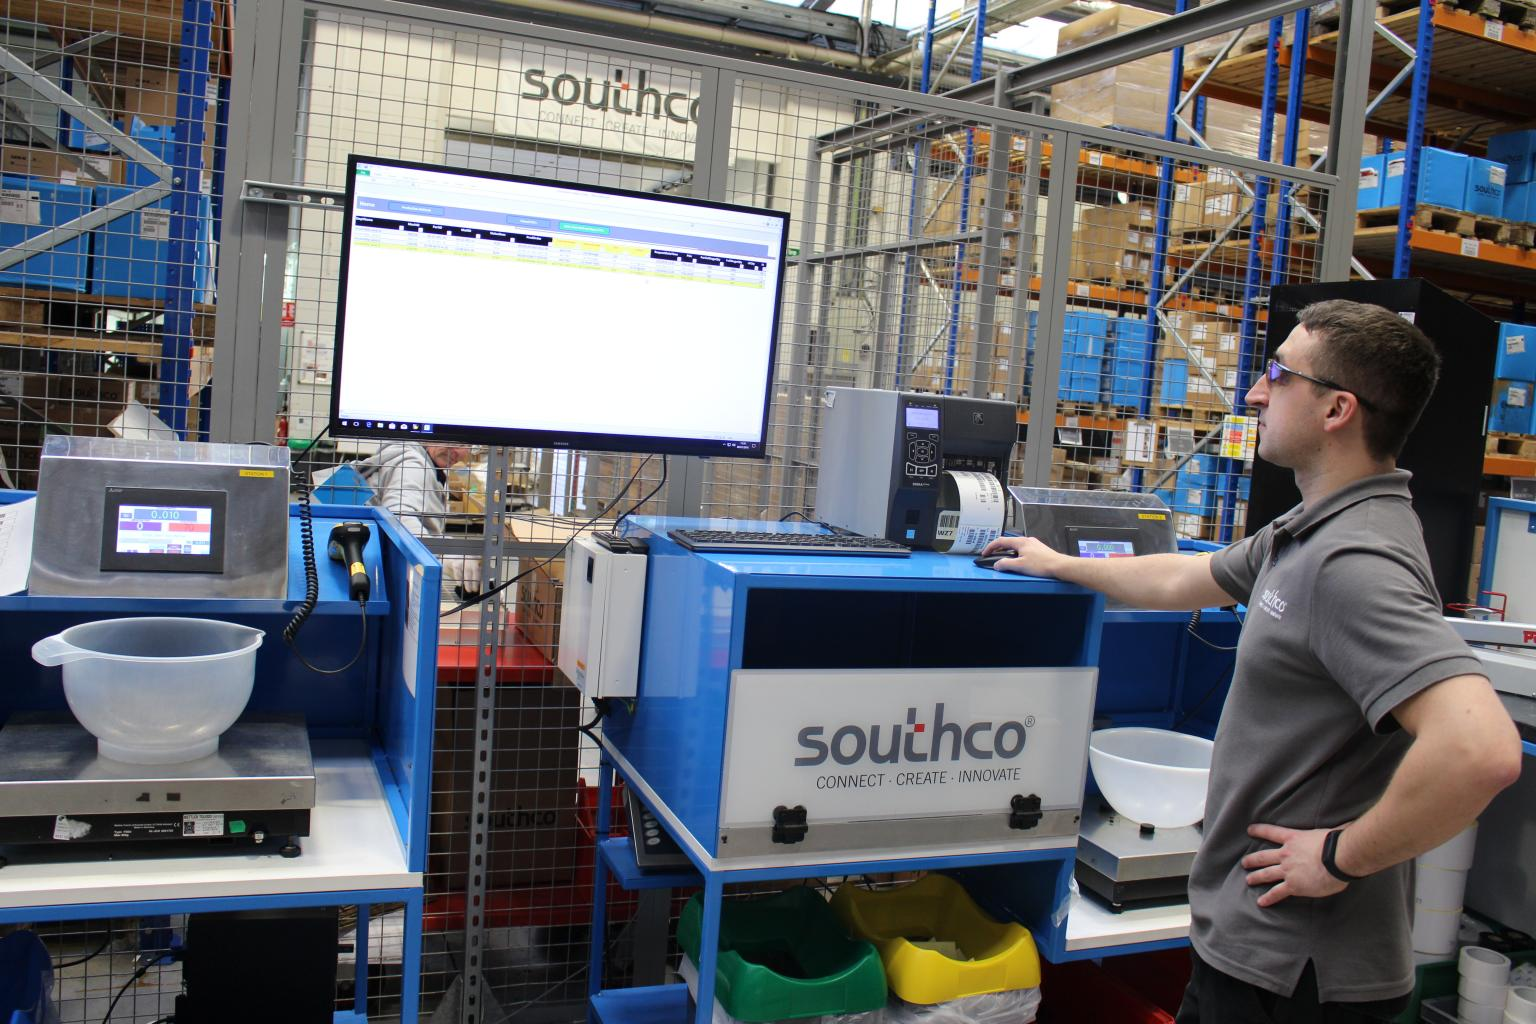 Southco is transforming facilities into smart factories